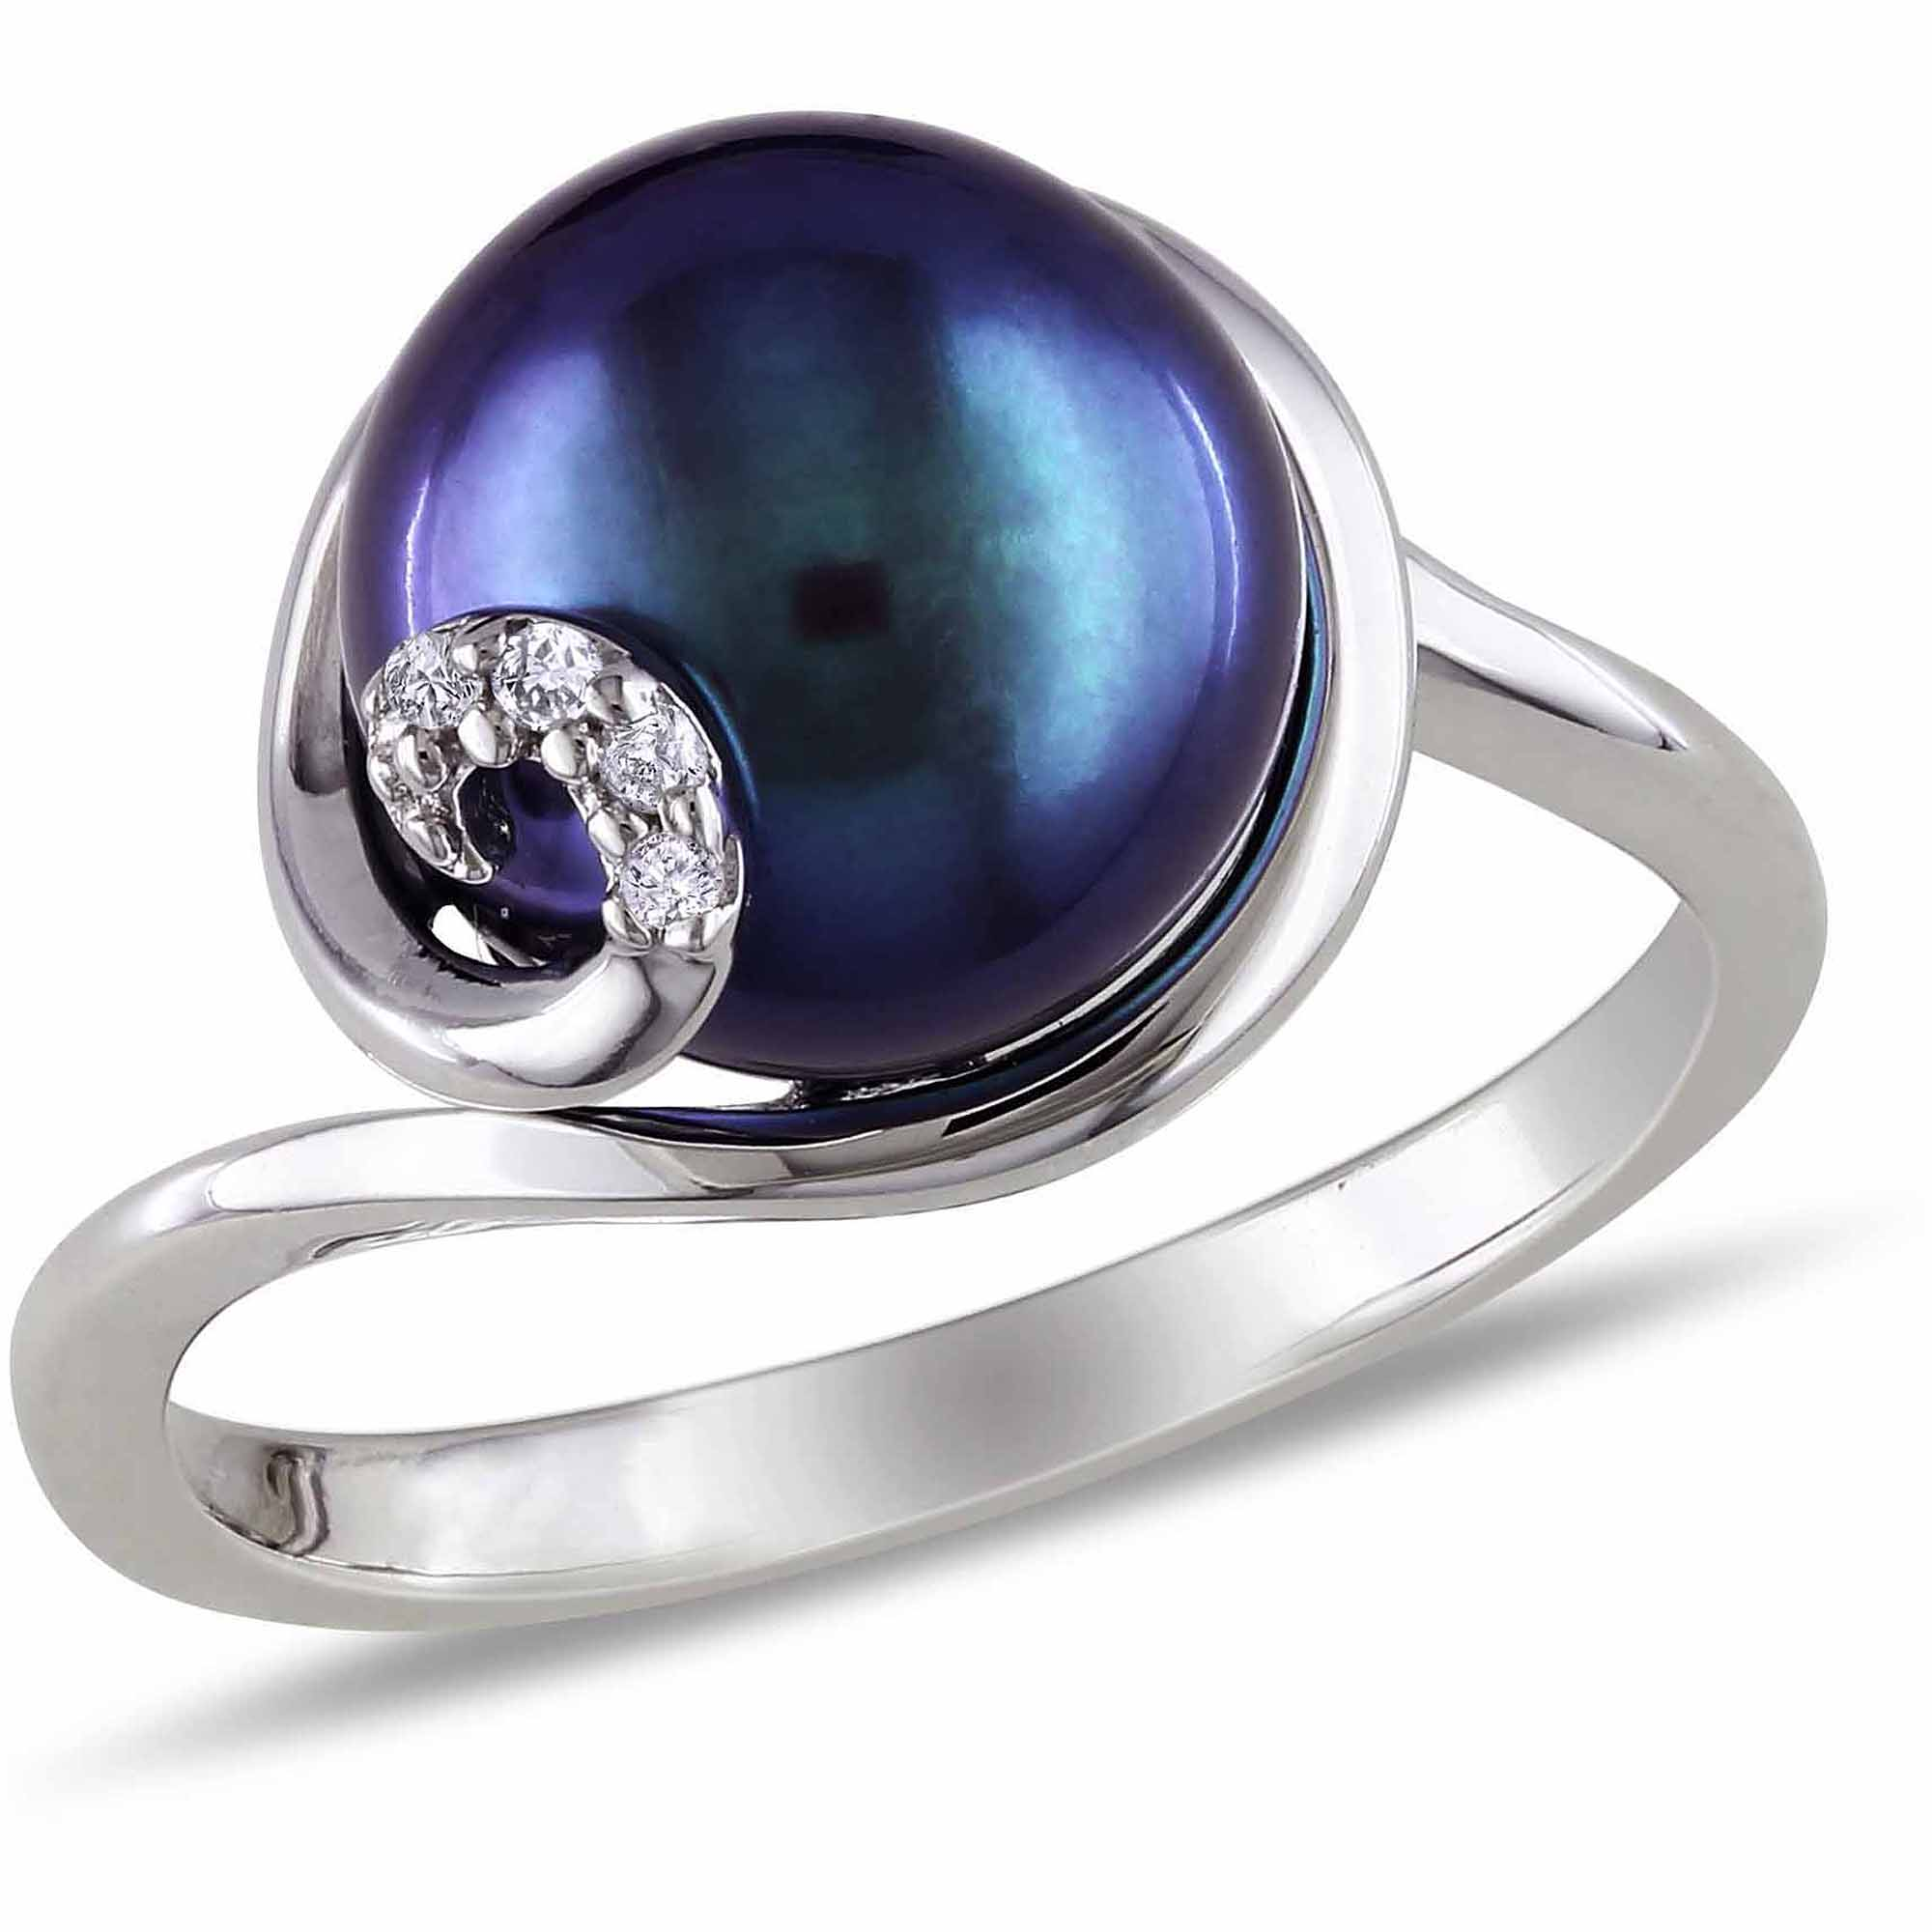 9-9.5mm Black Cultured Freshwater Pearl and Diamond-Accent Sterling Silver Swirl Ring